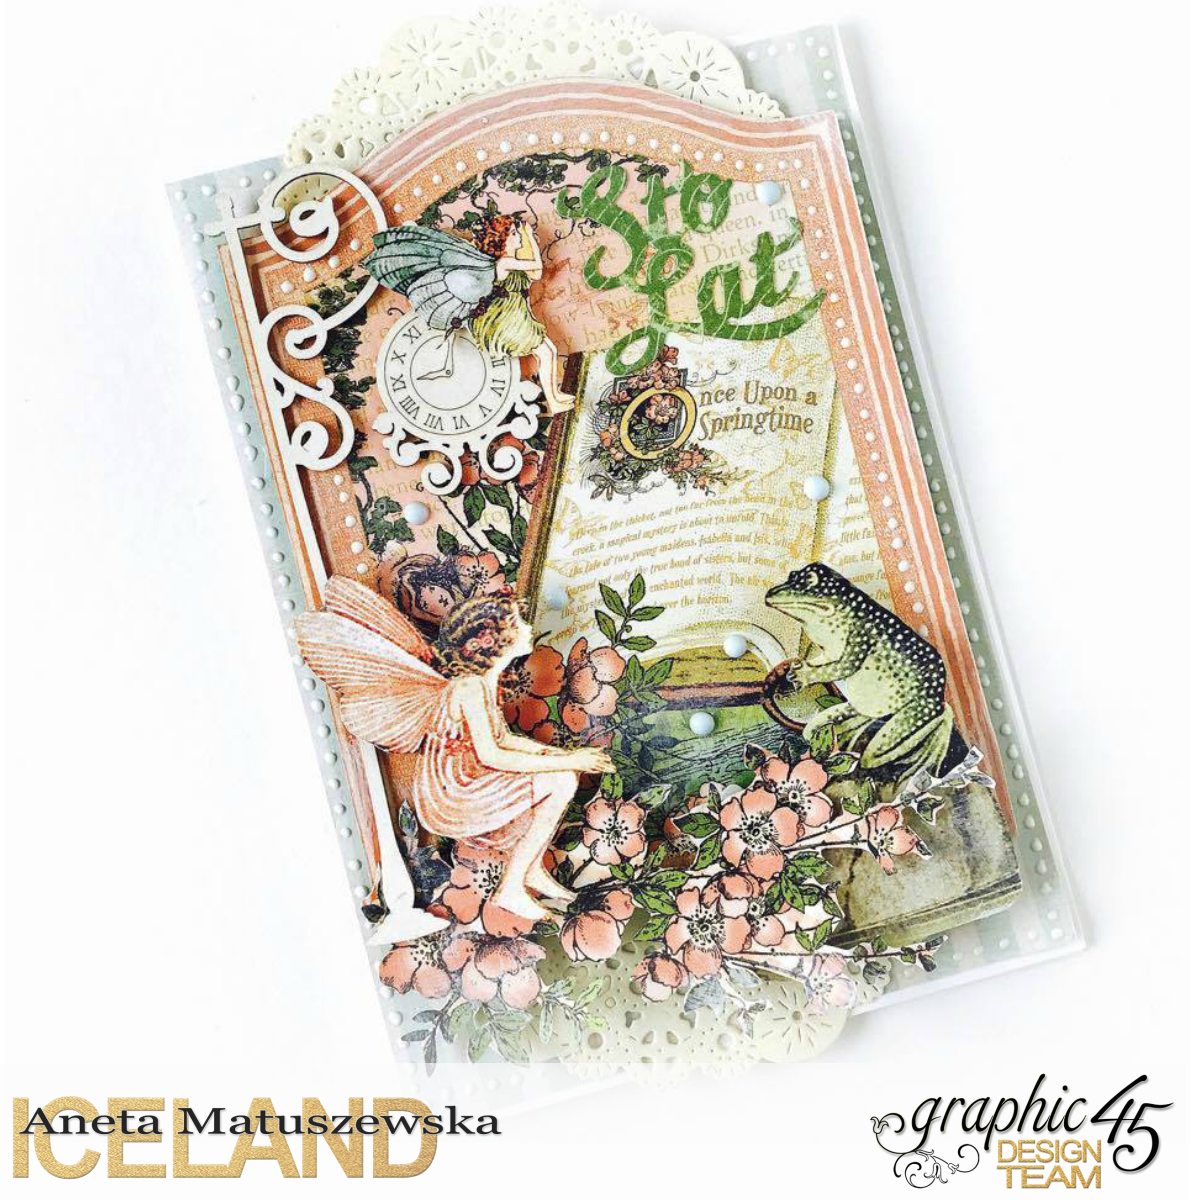 Once Upon a Springtime birthday card for G45, by Aneta Matuszewska, photo 1.png